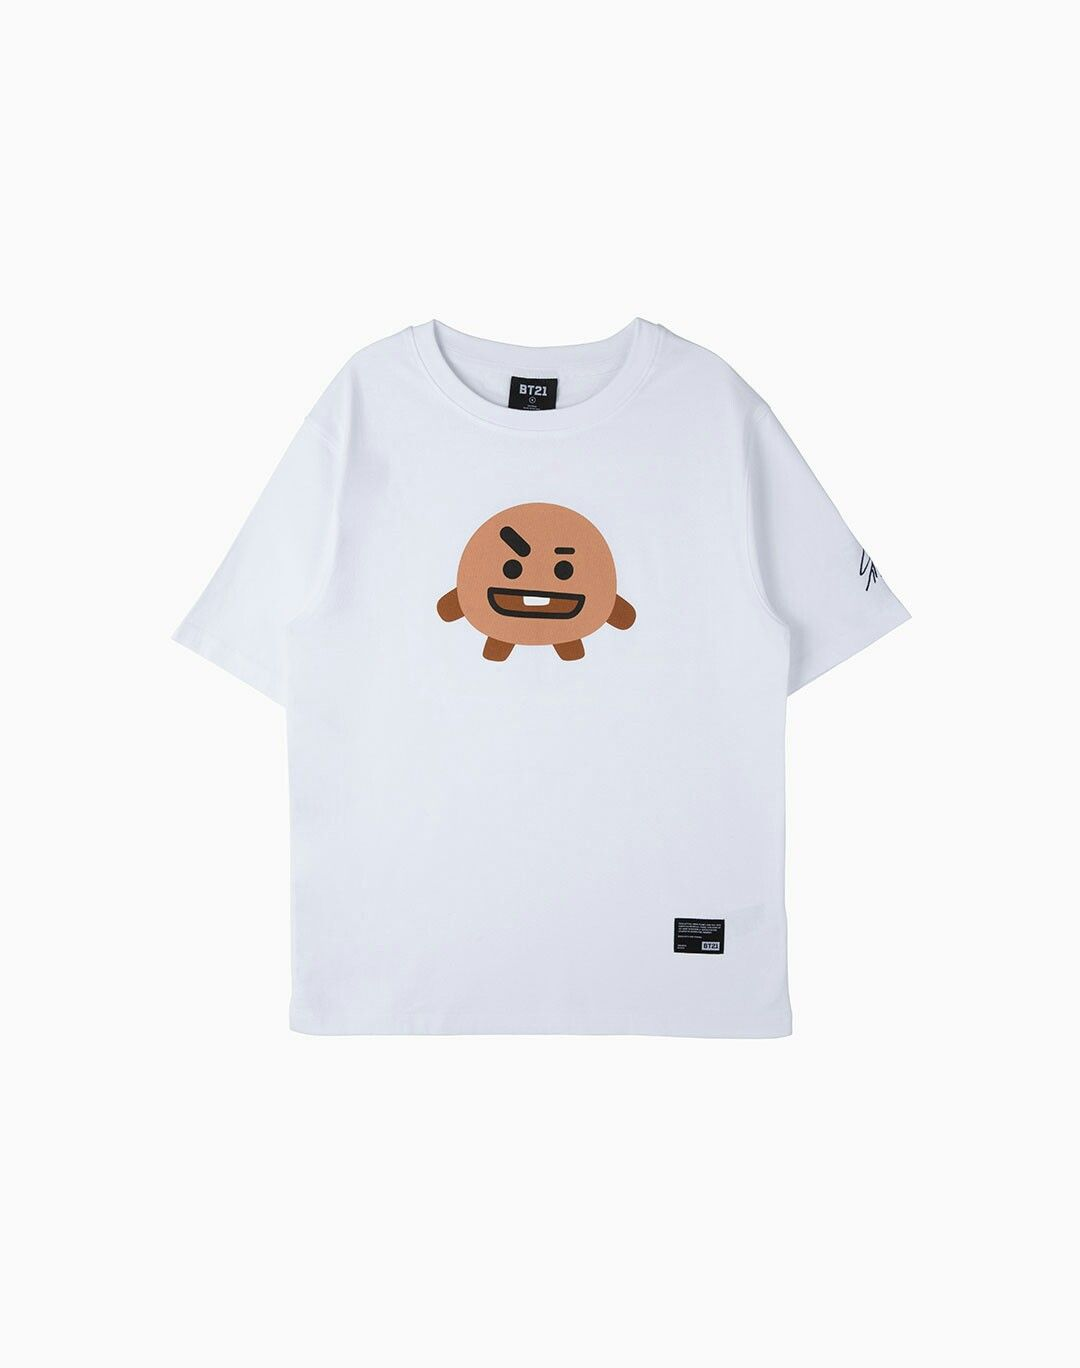 7b498064c7adb BT21 SHOOKY FACE GRAPHIC T-SHIRT | BT21 Shooky in 2019 | Mens tops ...